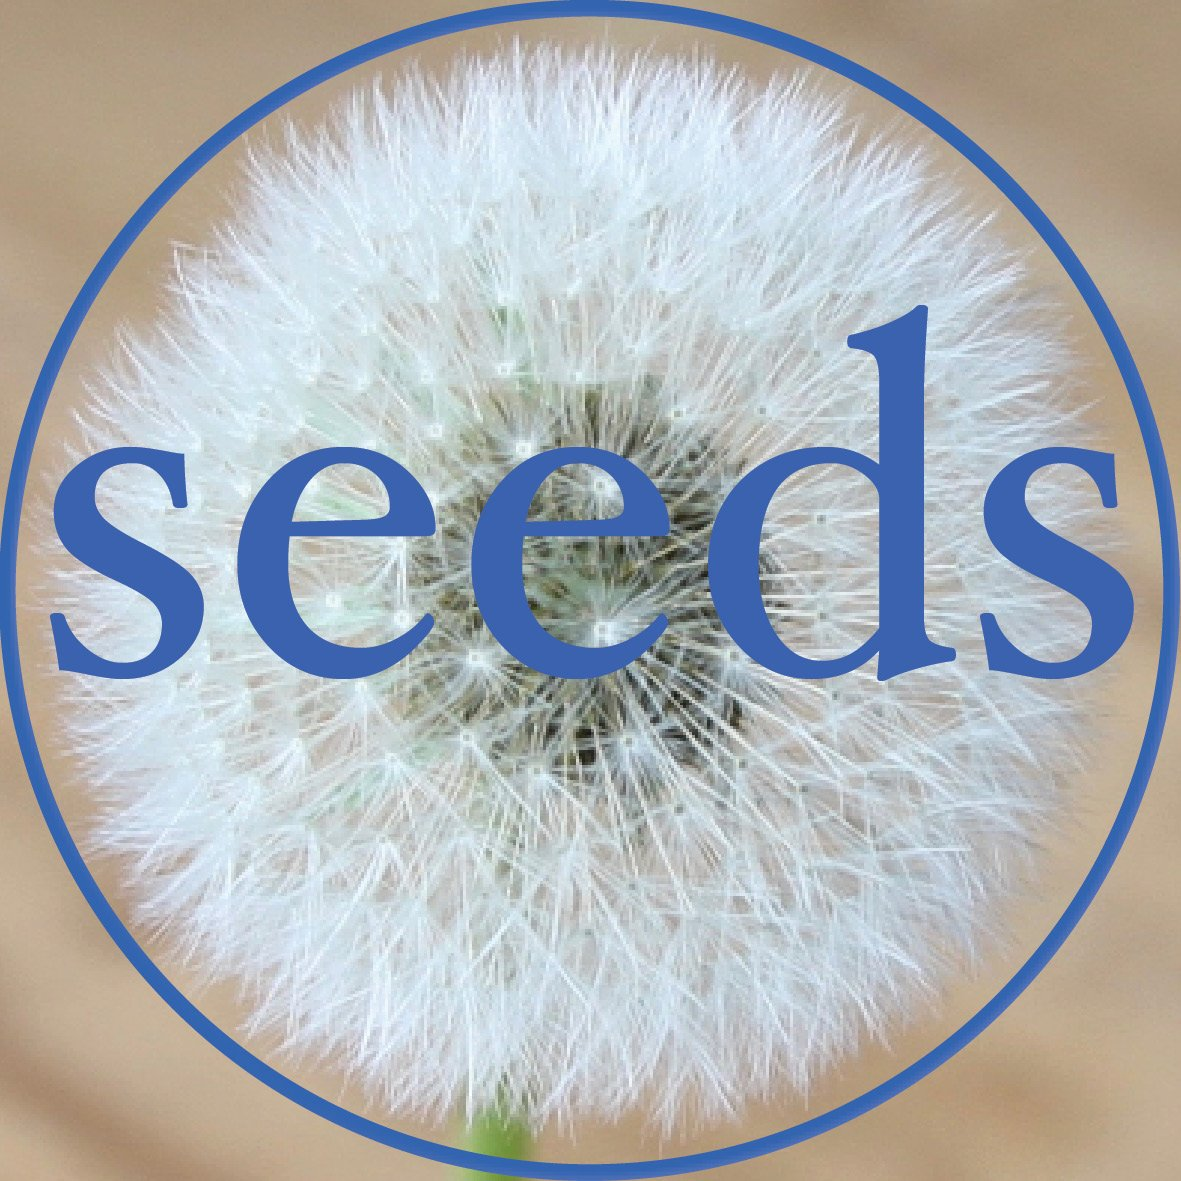 Seeds Podcast